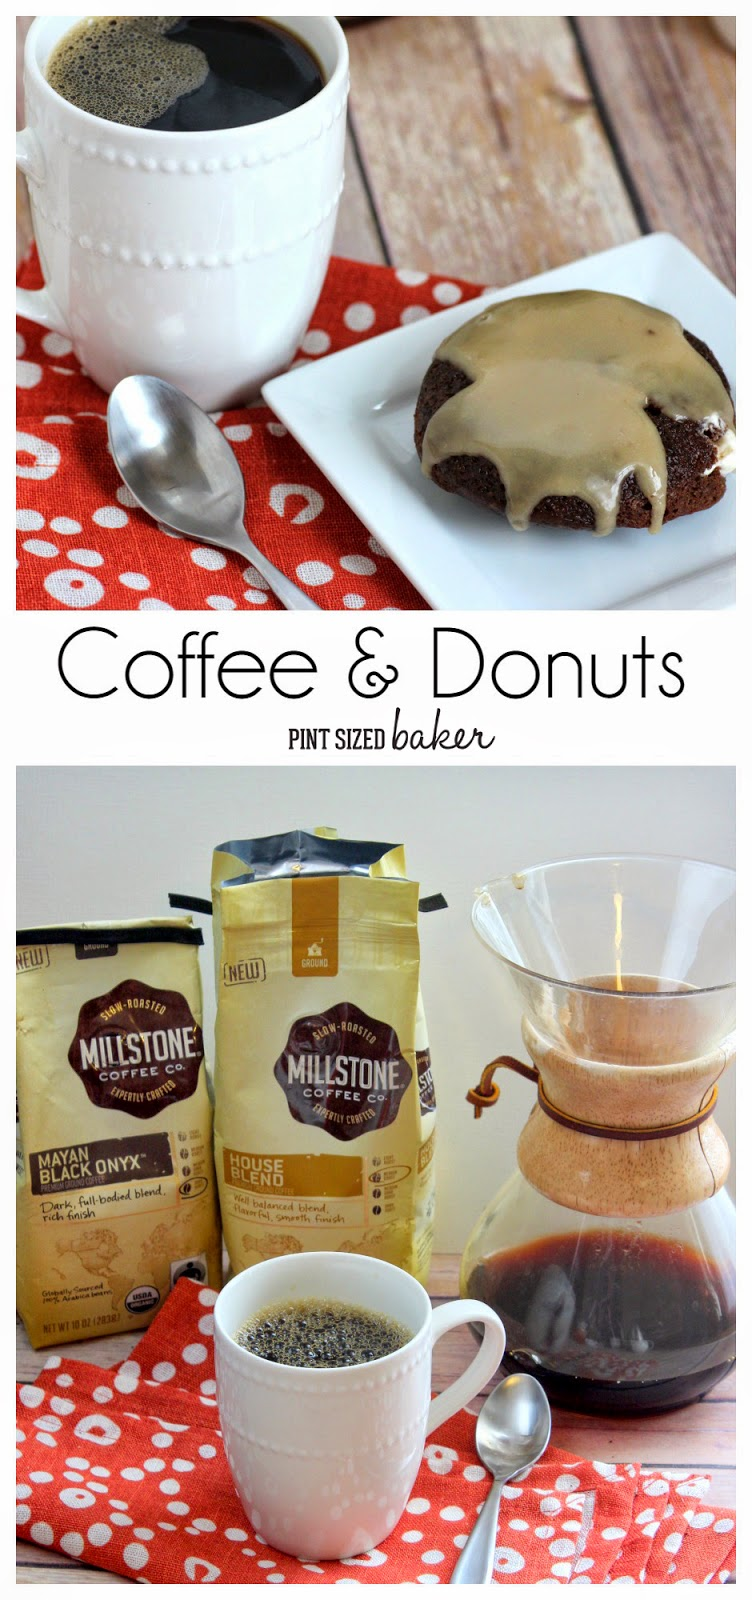 Cream Filled Chocolate Donuts with Coffee Glaze. Wake up with #MillstoneCoffee and Fresh Donuts!